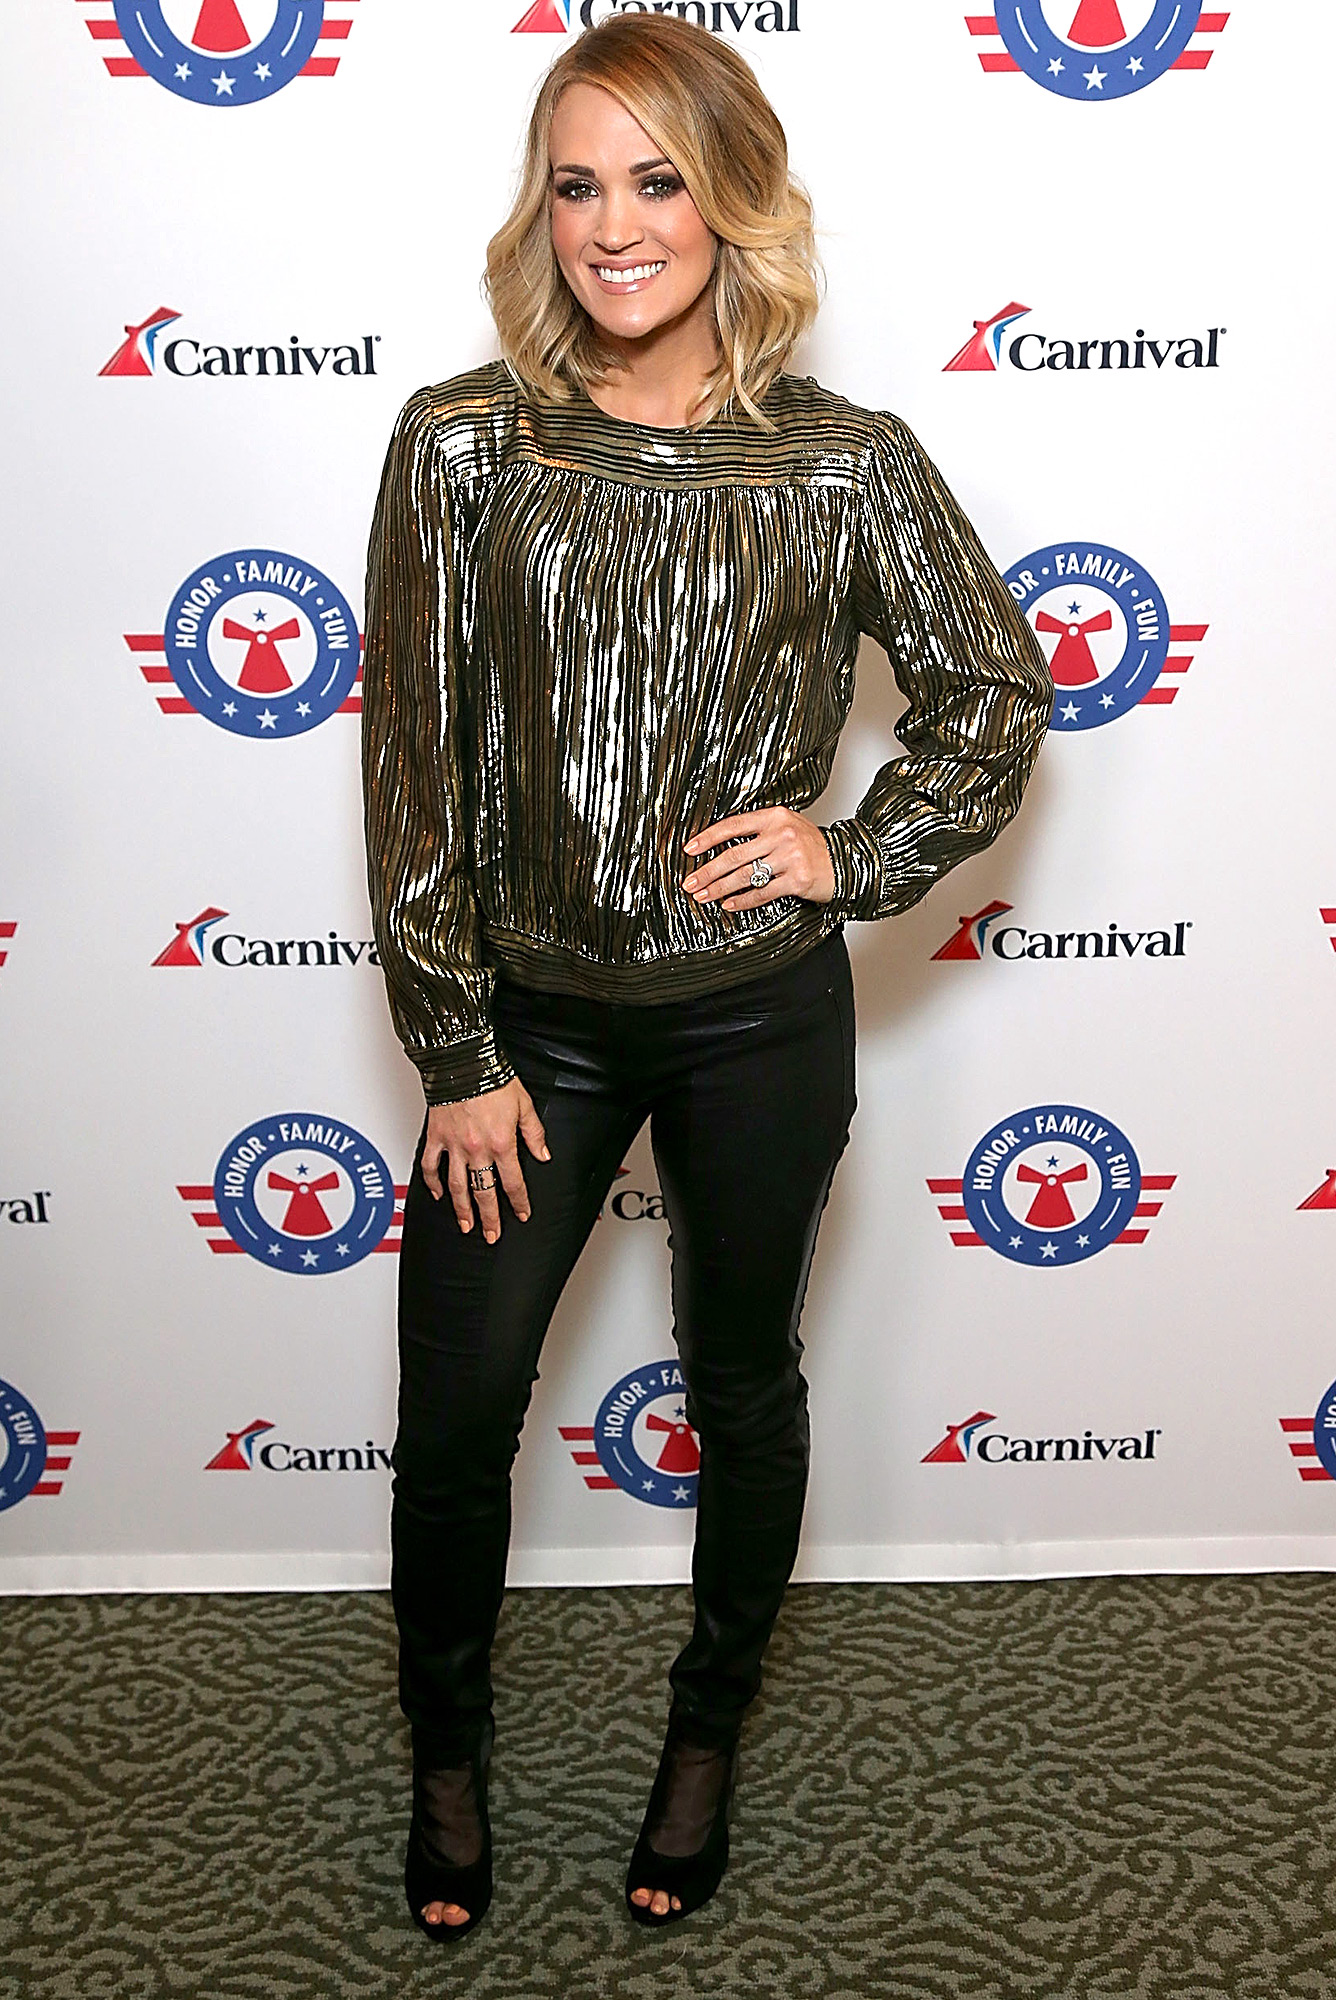 Carrie Underwood Performs Live On Cruise Ship Carnival Imagination